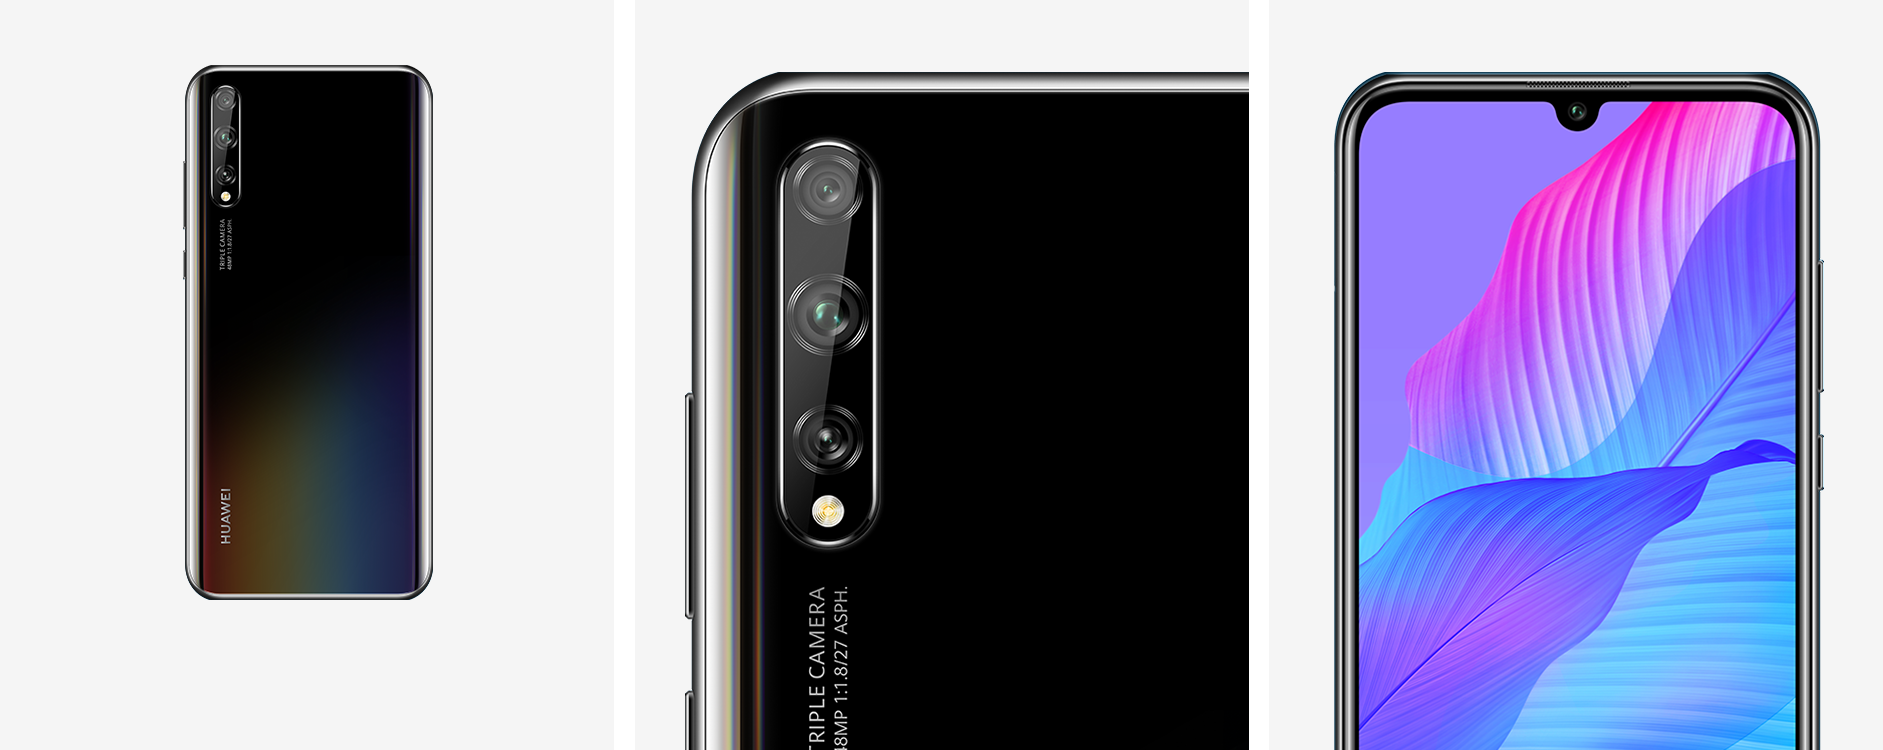 huawei p smart s-colorful id phone